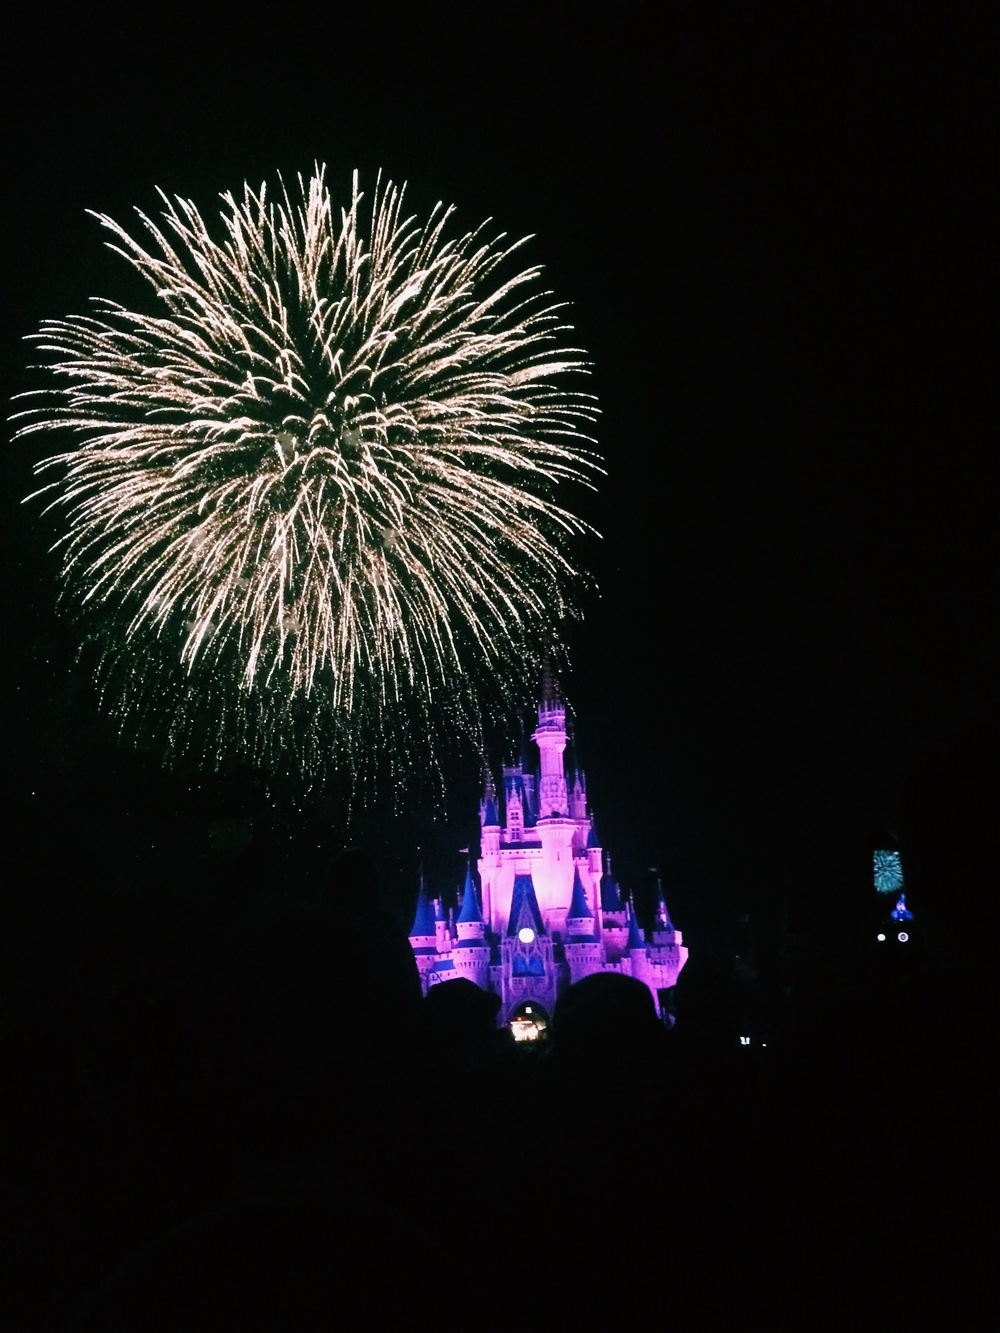 We watched Wishes a couple of times throughout the week but this was on Monday, on my birthday! Not a bad way to end your birthday!